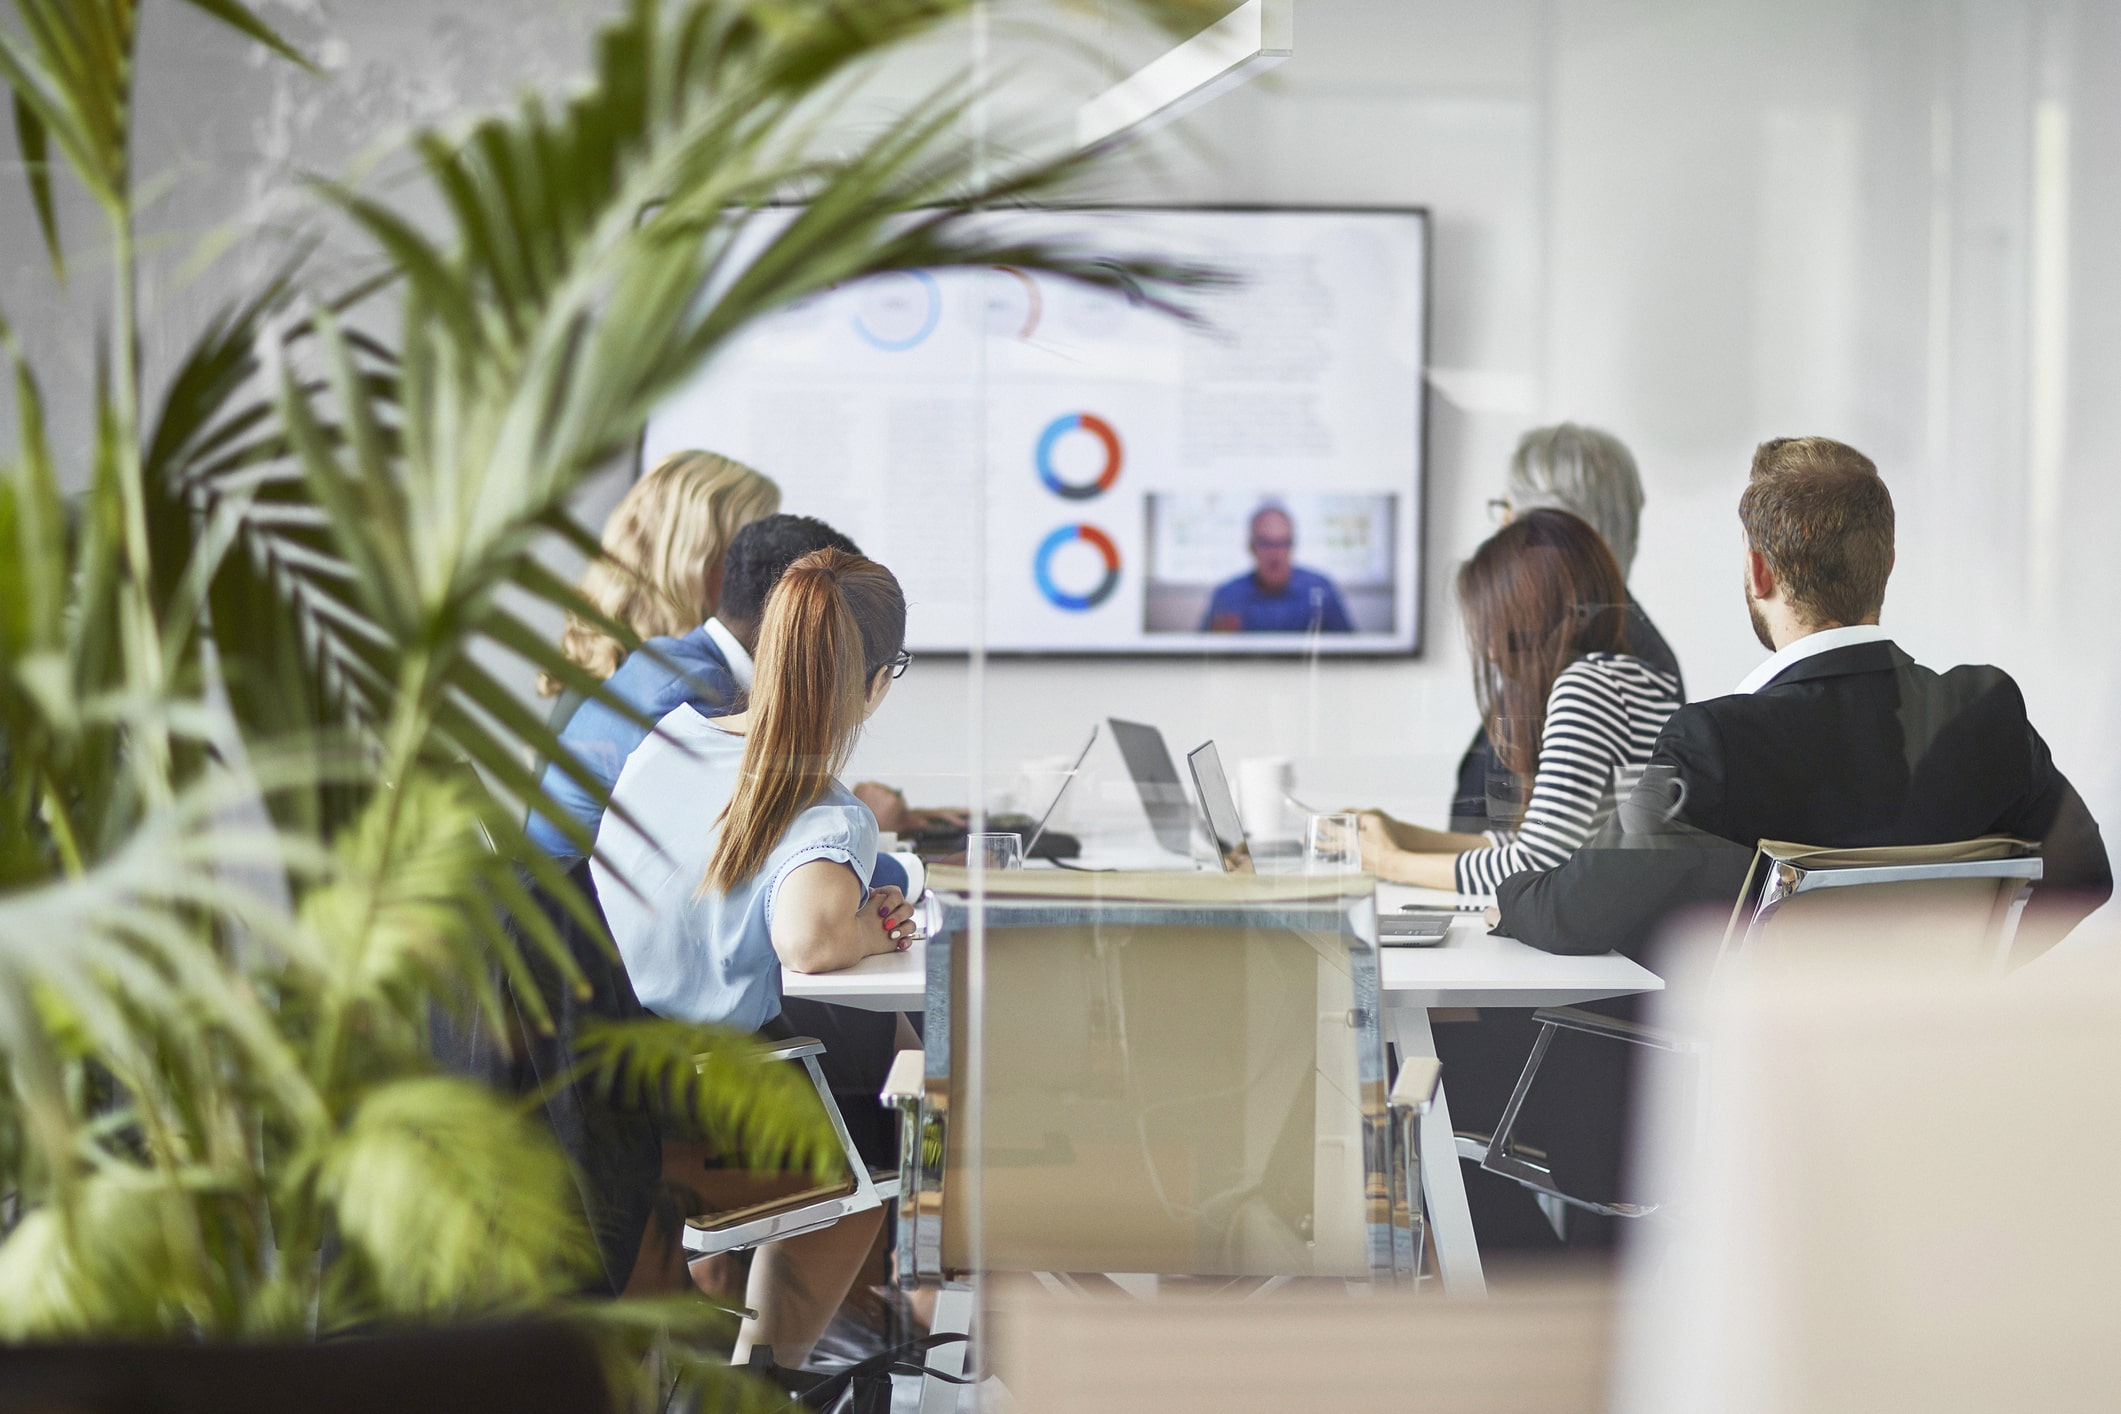 Finance company employees use video conferencing for internal communications